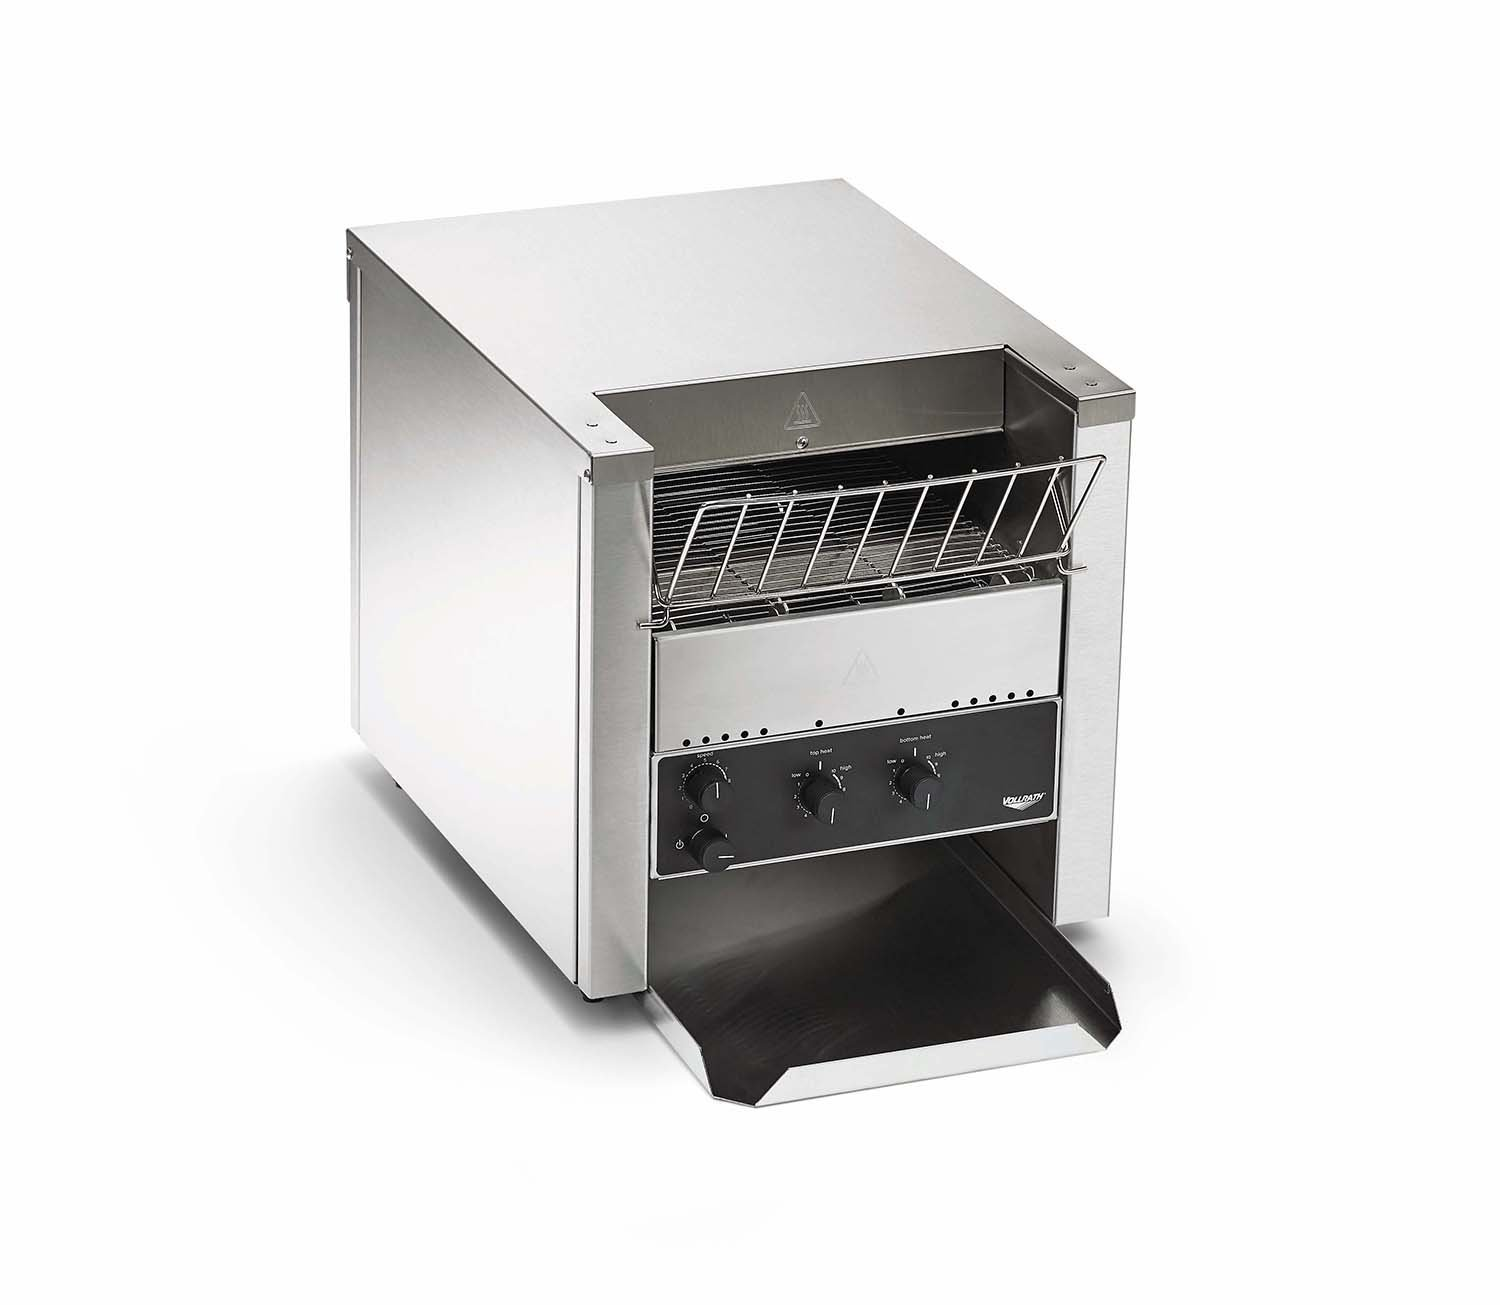 Vollrath CT4H-208550 Conveyor Toaster - 550 Slices/Hour, 208V